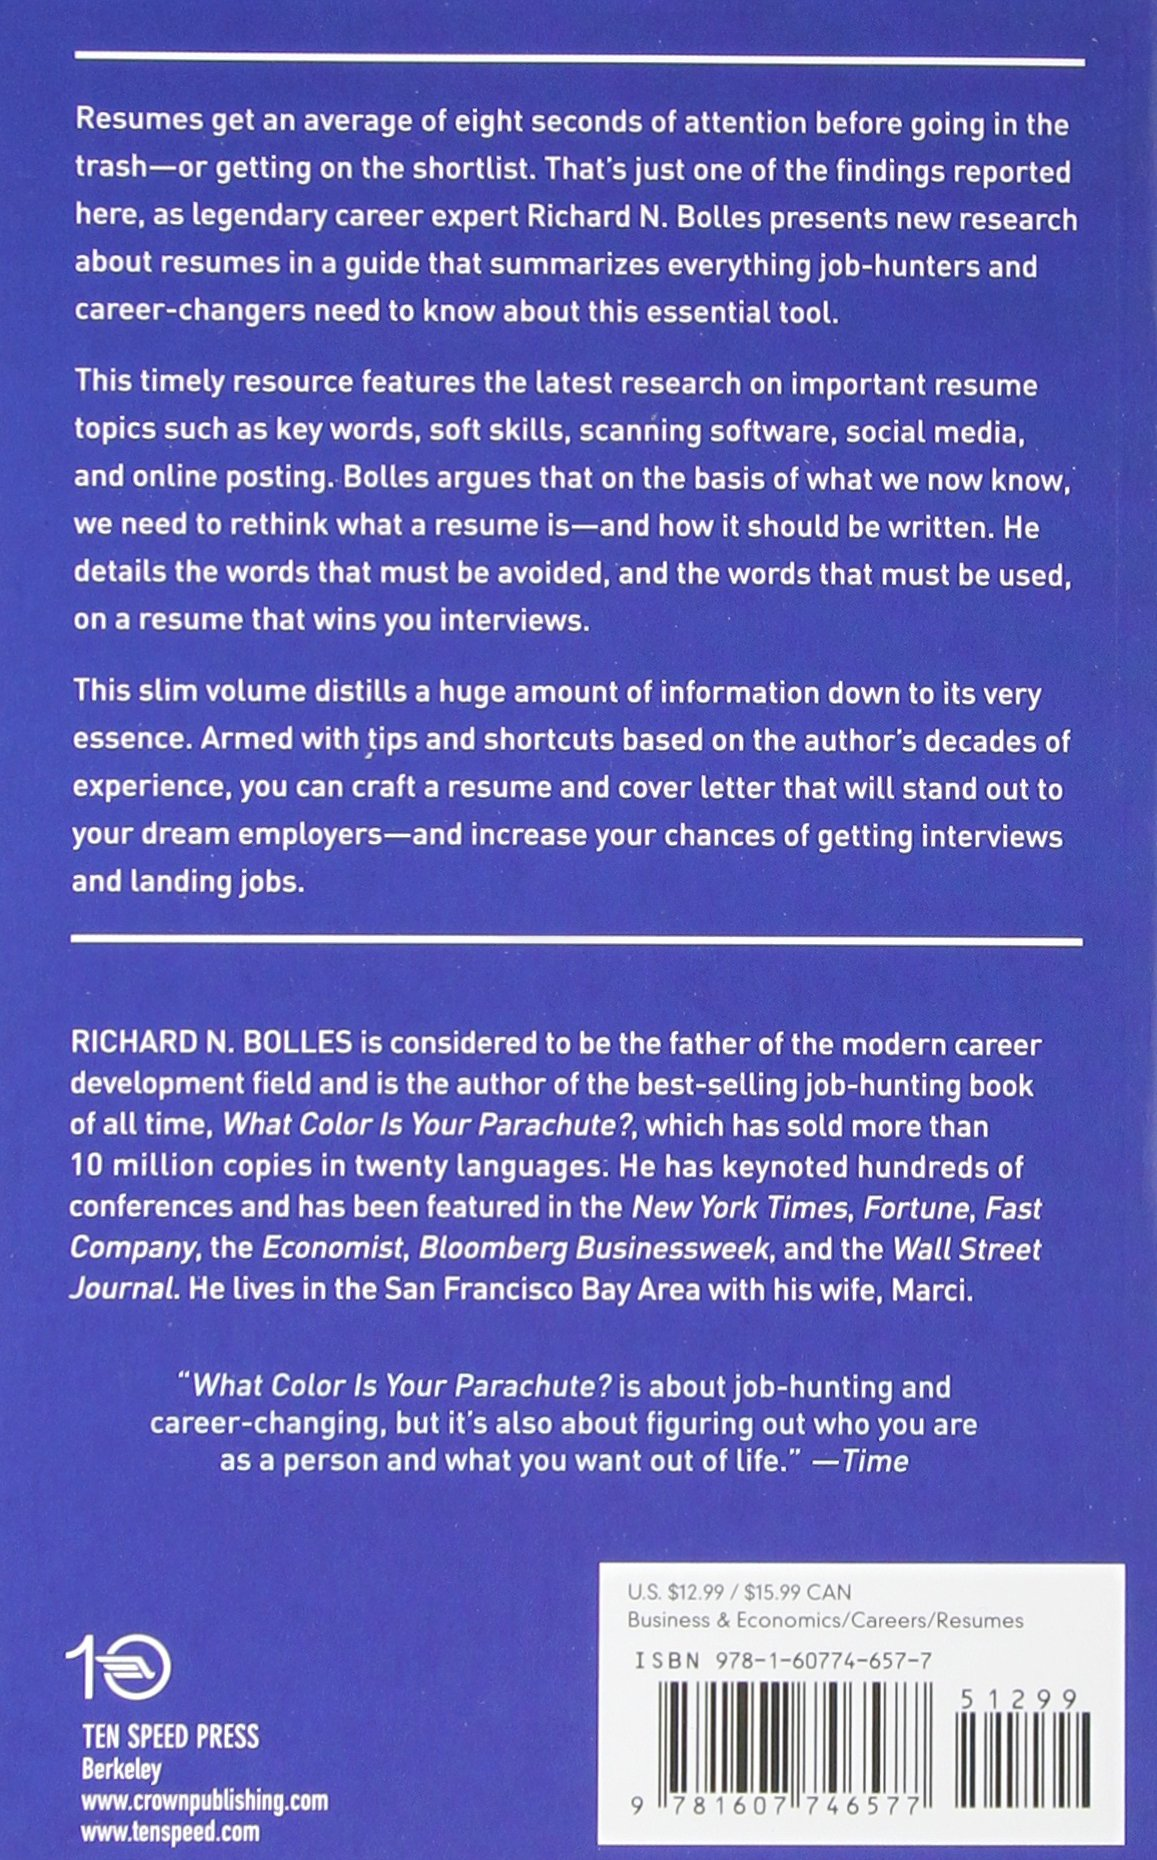 guide to rethinking resumes write a winning resume and cover letter and land your dream interview richard n bolles 0884339277902 amazoncom books - Resume Scanning Software